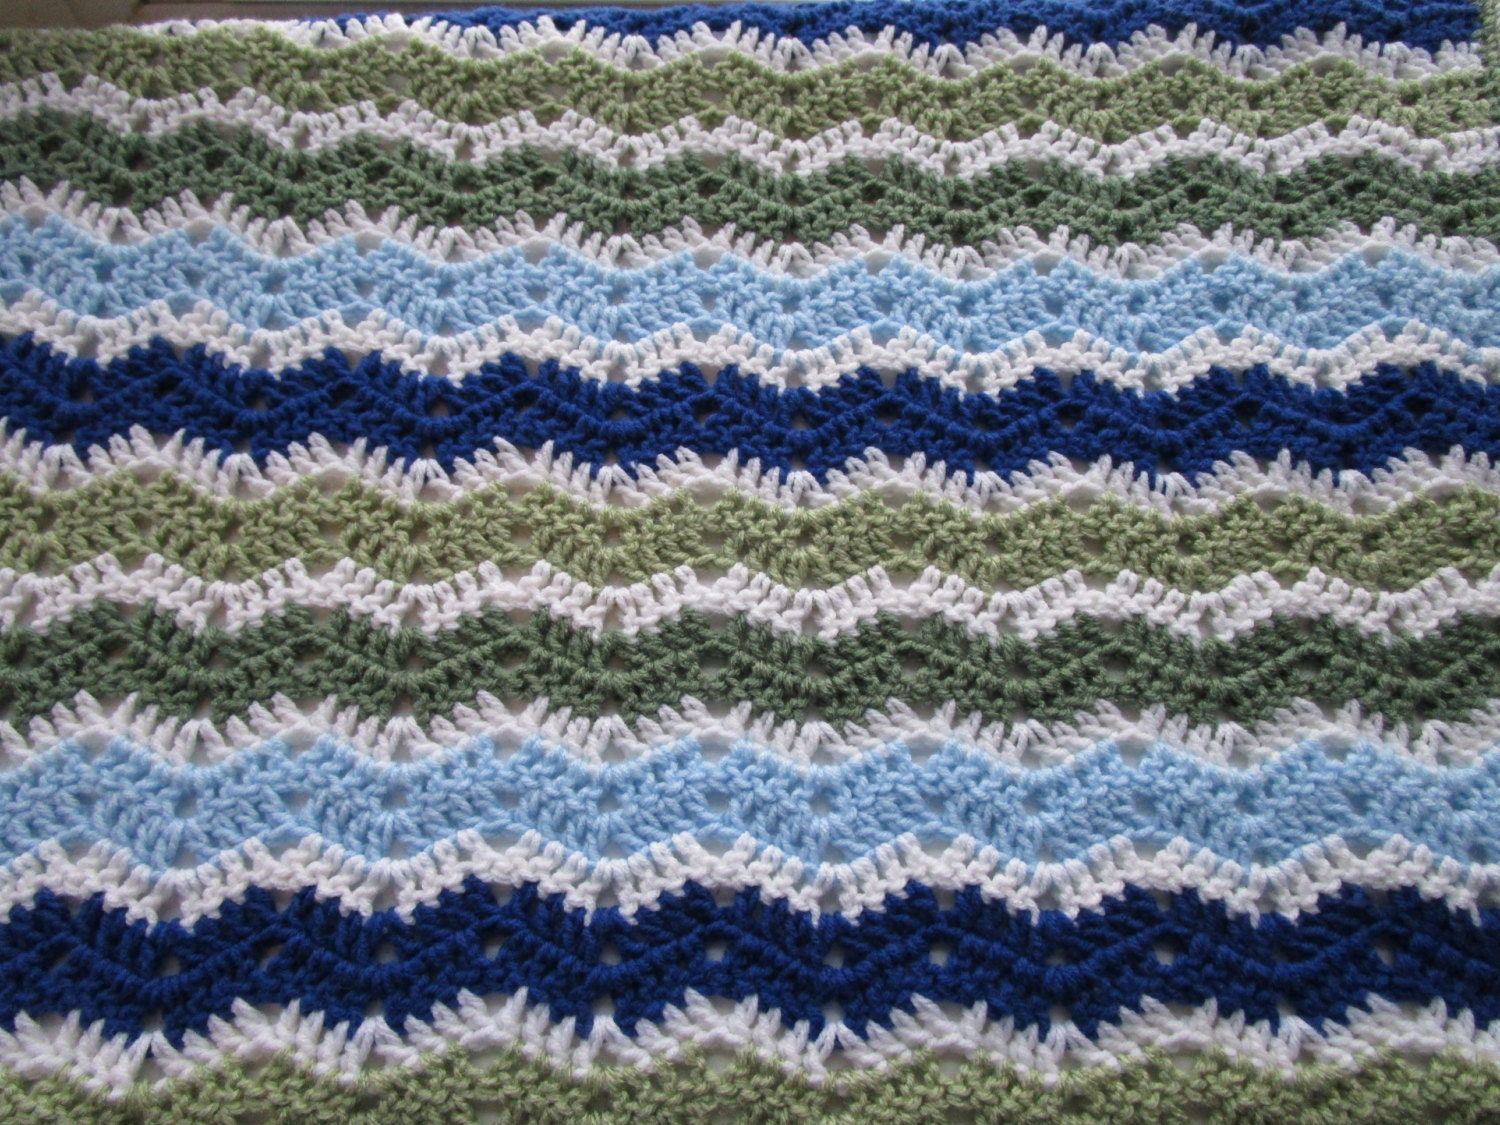 Crochet Patterns Easy Ripple Afghan